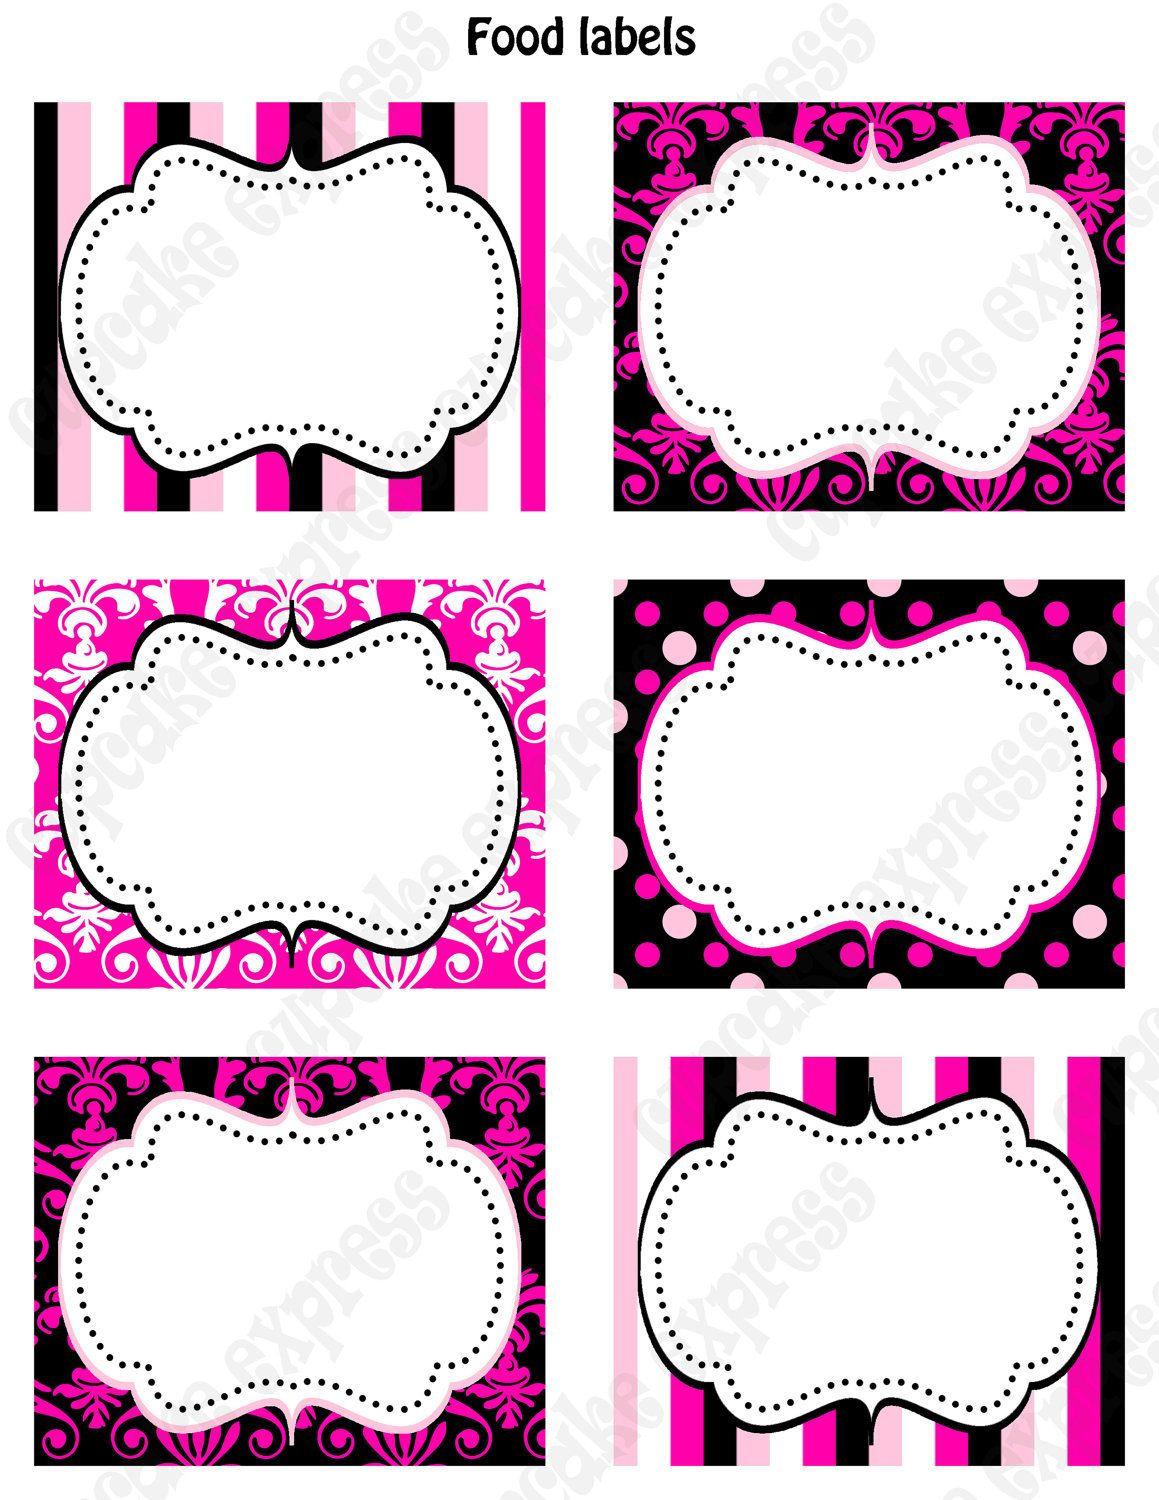 Diy Barbie Inspired Birthday Party Printable Food Labels Favor Tags Pink Black White Polka Dots Damask Stripes   Via Etsy